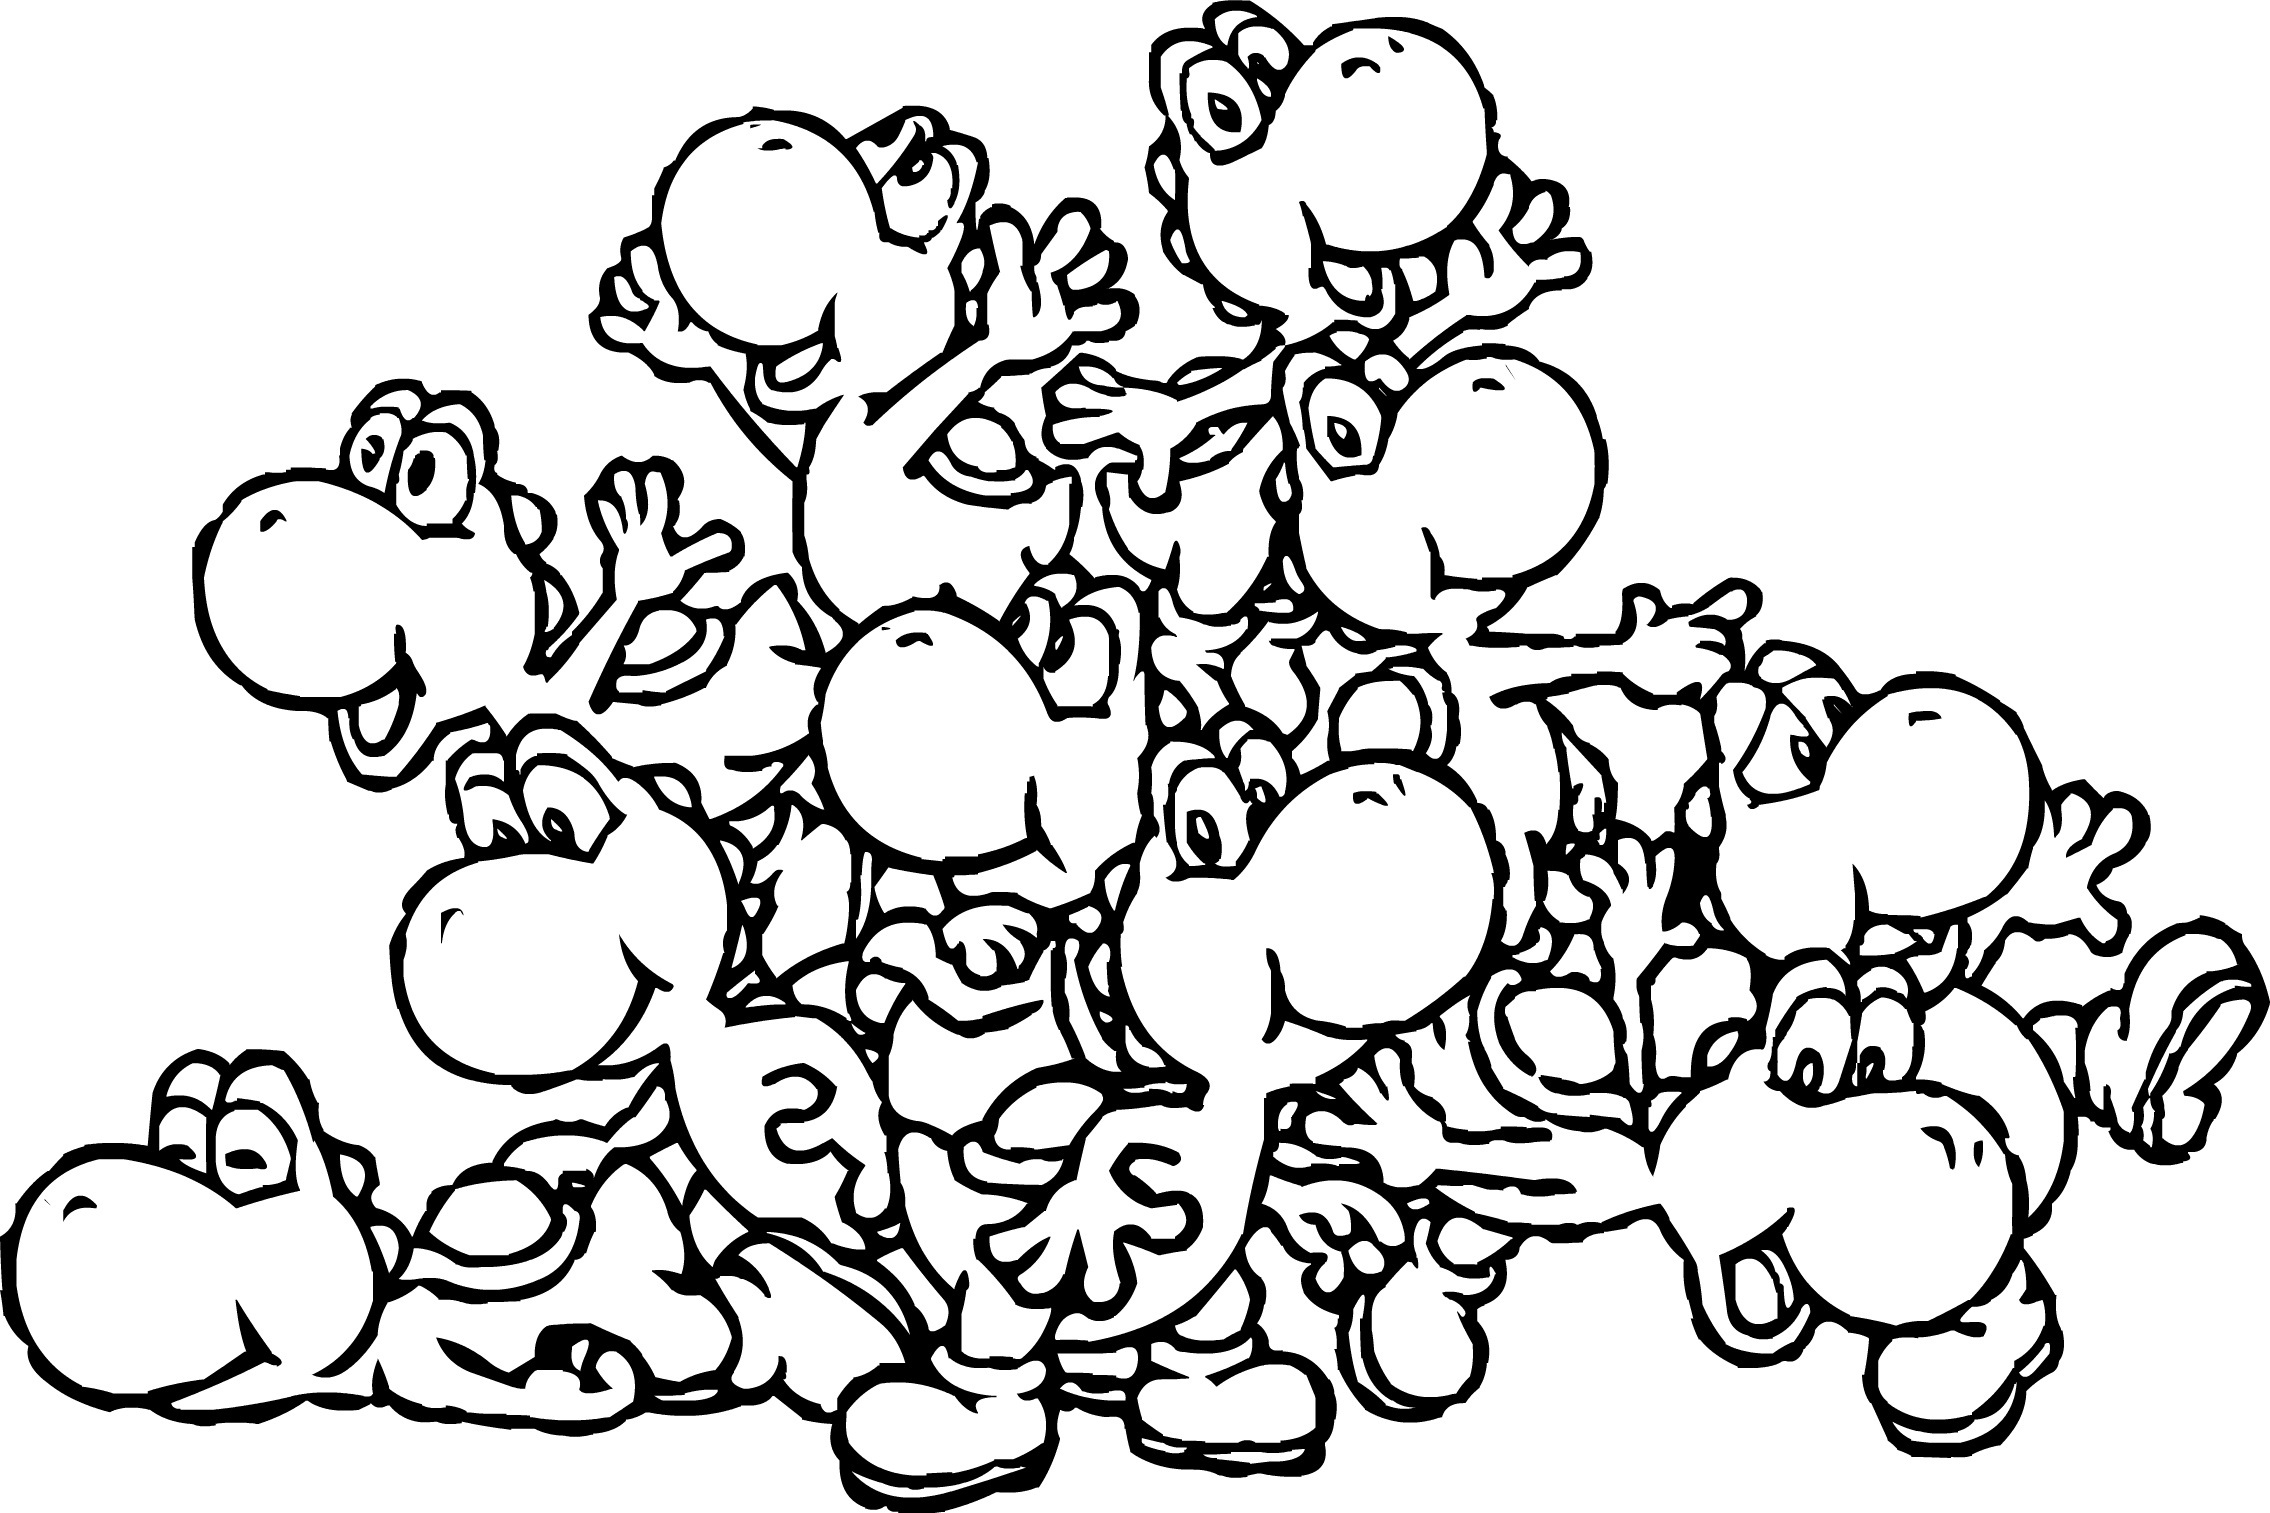 super mario soccer coloring pages - photo#21